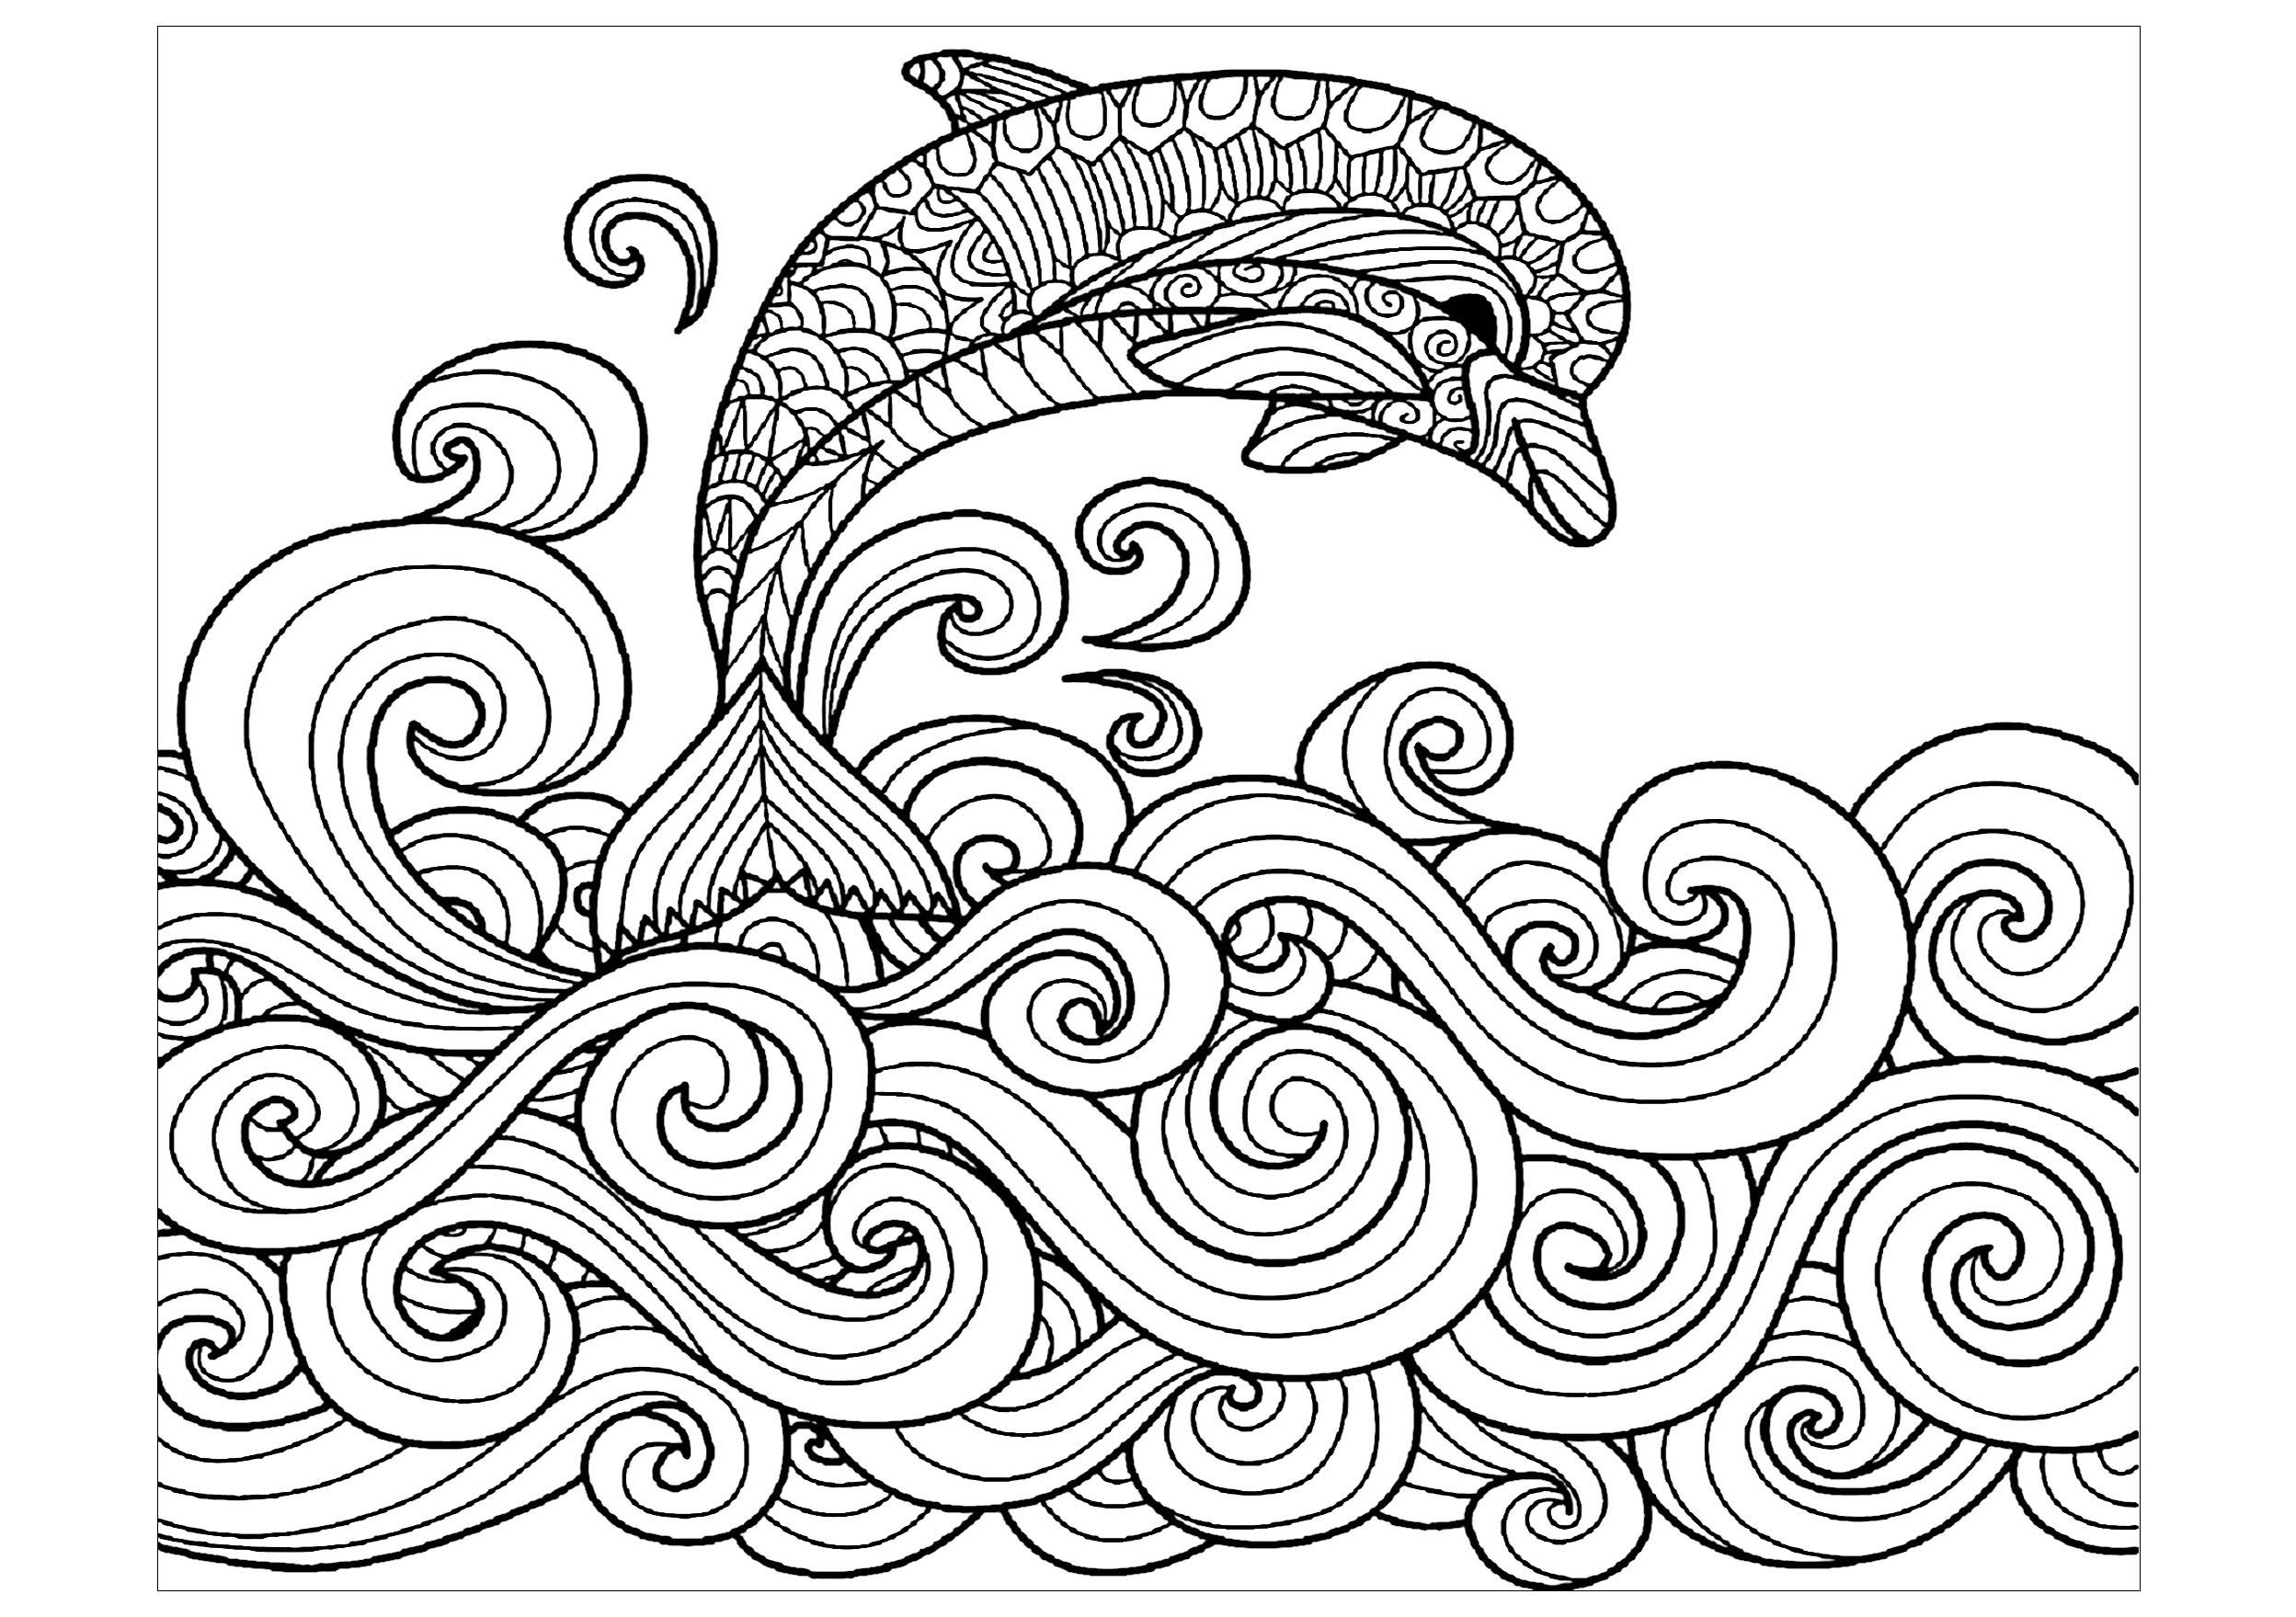 Bottlenose dolphins coloring page | Free Printable Coloring Pages | 1759x2497